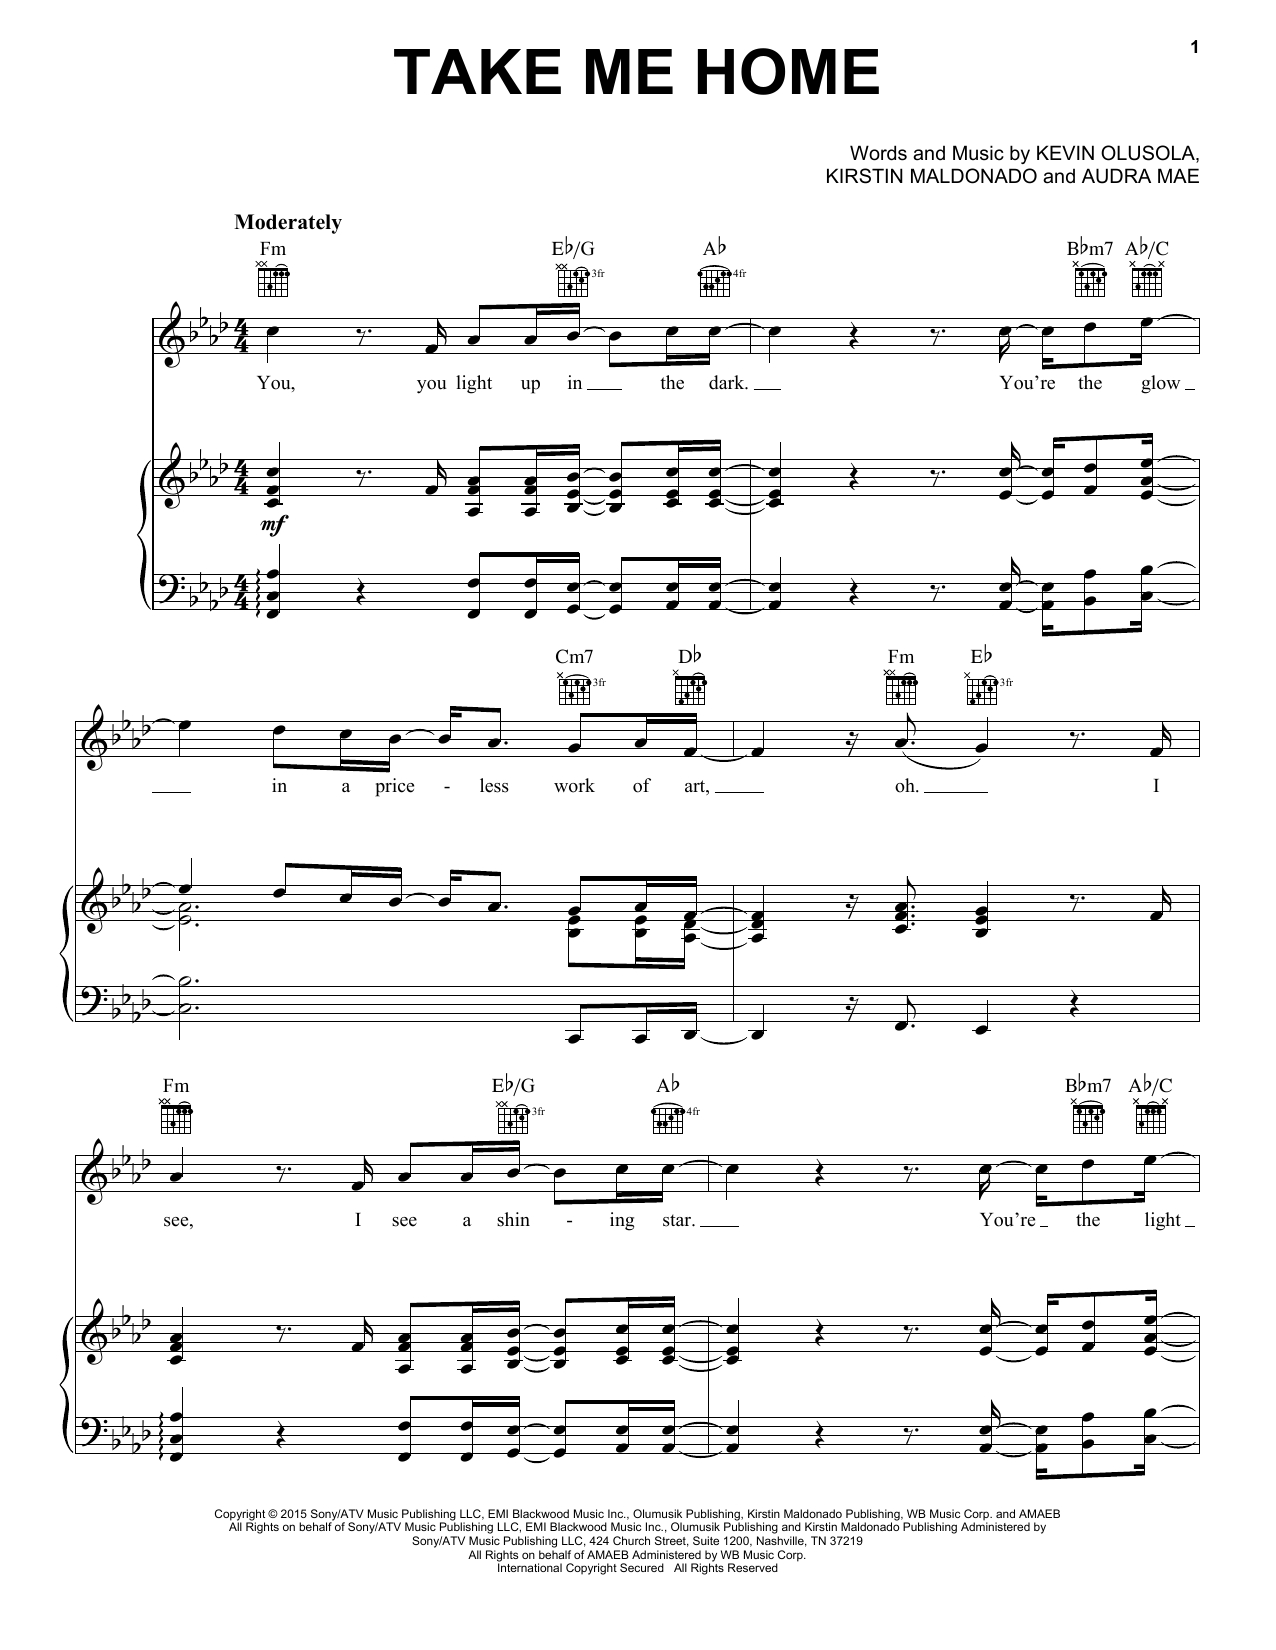 Take Me To Church Chords Pentatonix Take Me Home Sheet Music Notes Chords Download Printable Piano Vocal Guitar Right Hand Melody Sku 164605